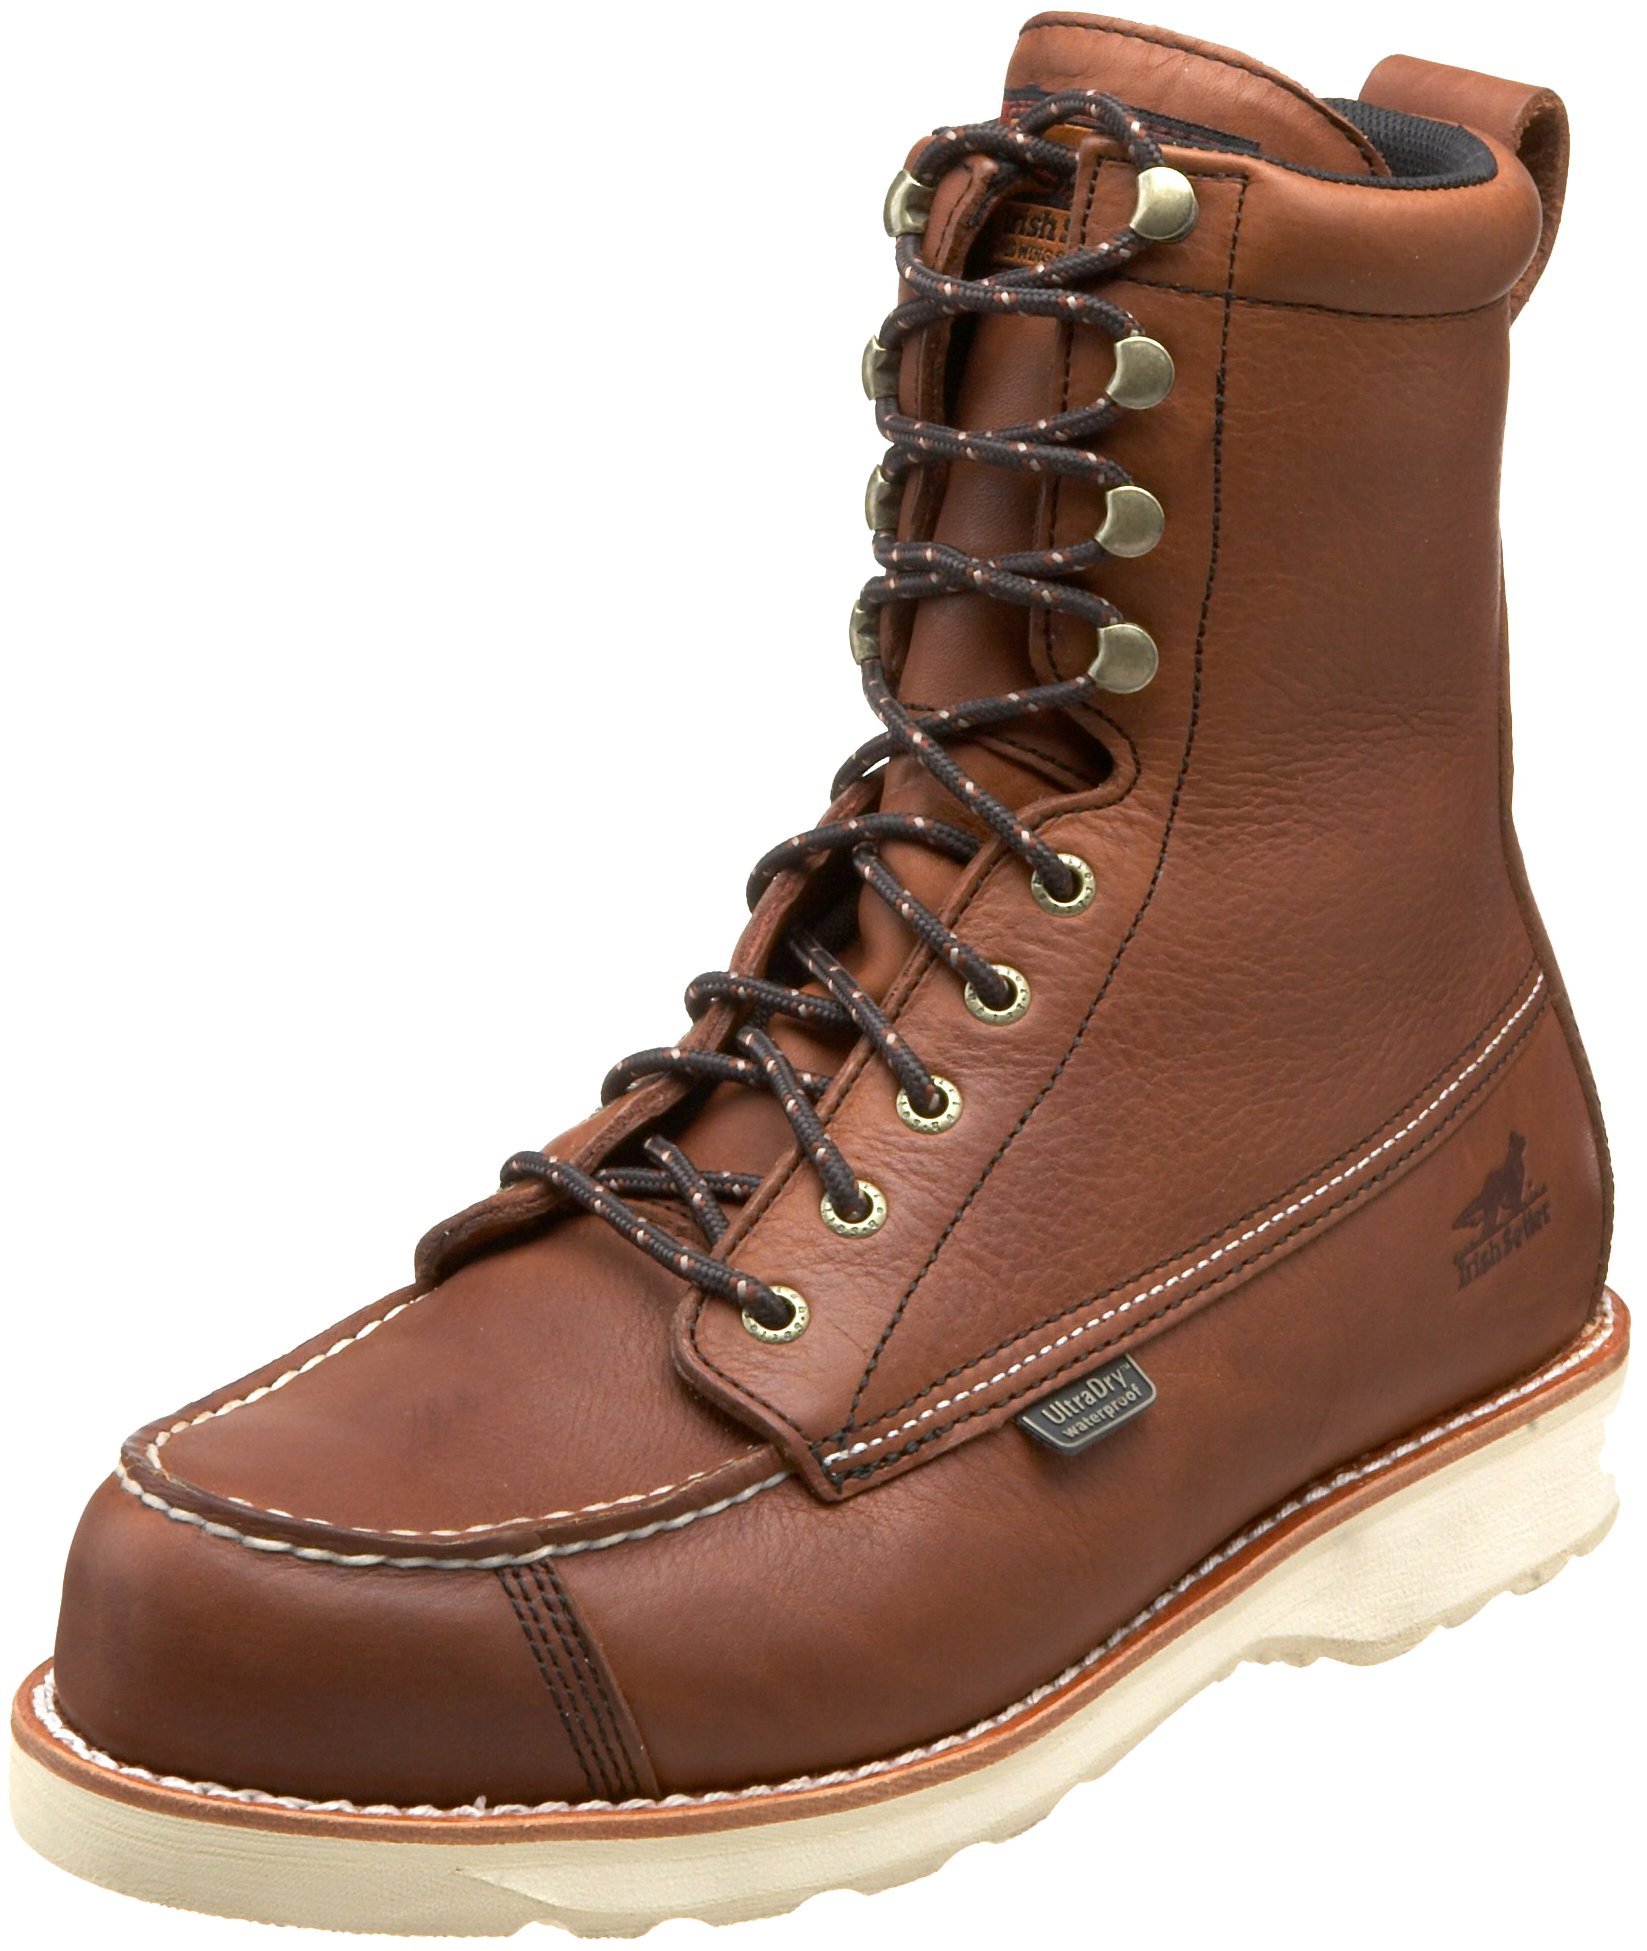 Irish Setter Men's 894 Wingshooter Waterproof 9'' Upland Hunting Boot,Amber,9 D US